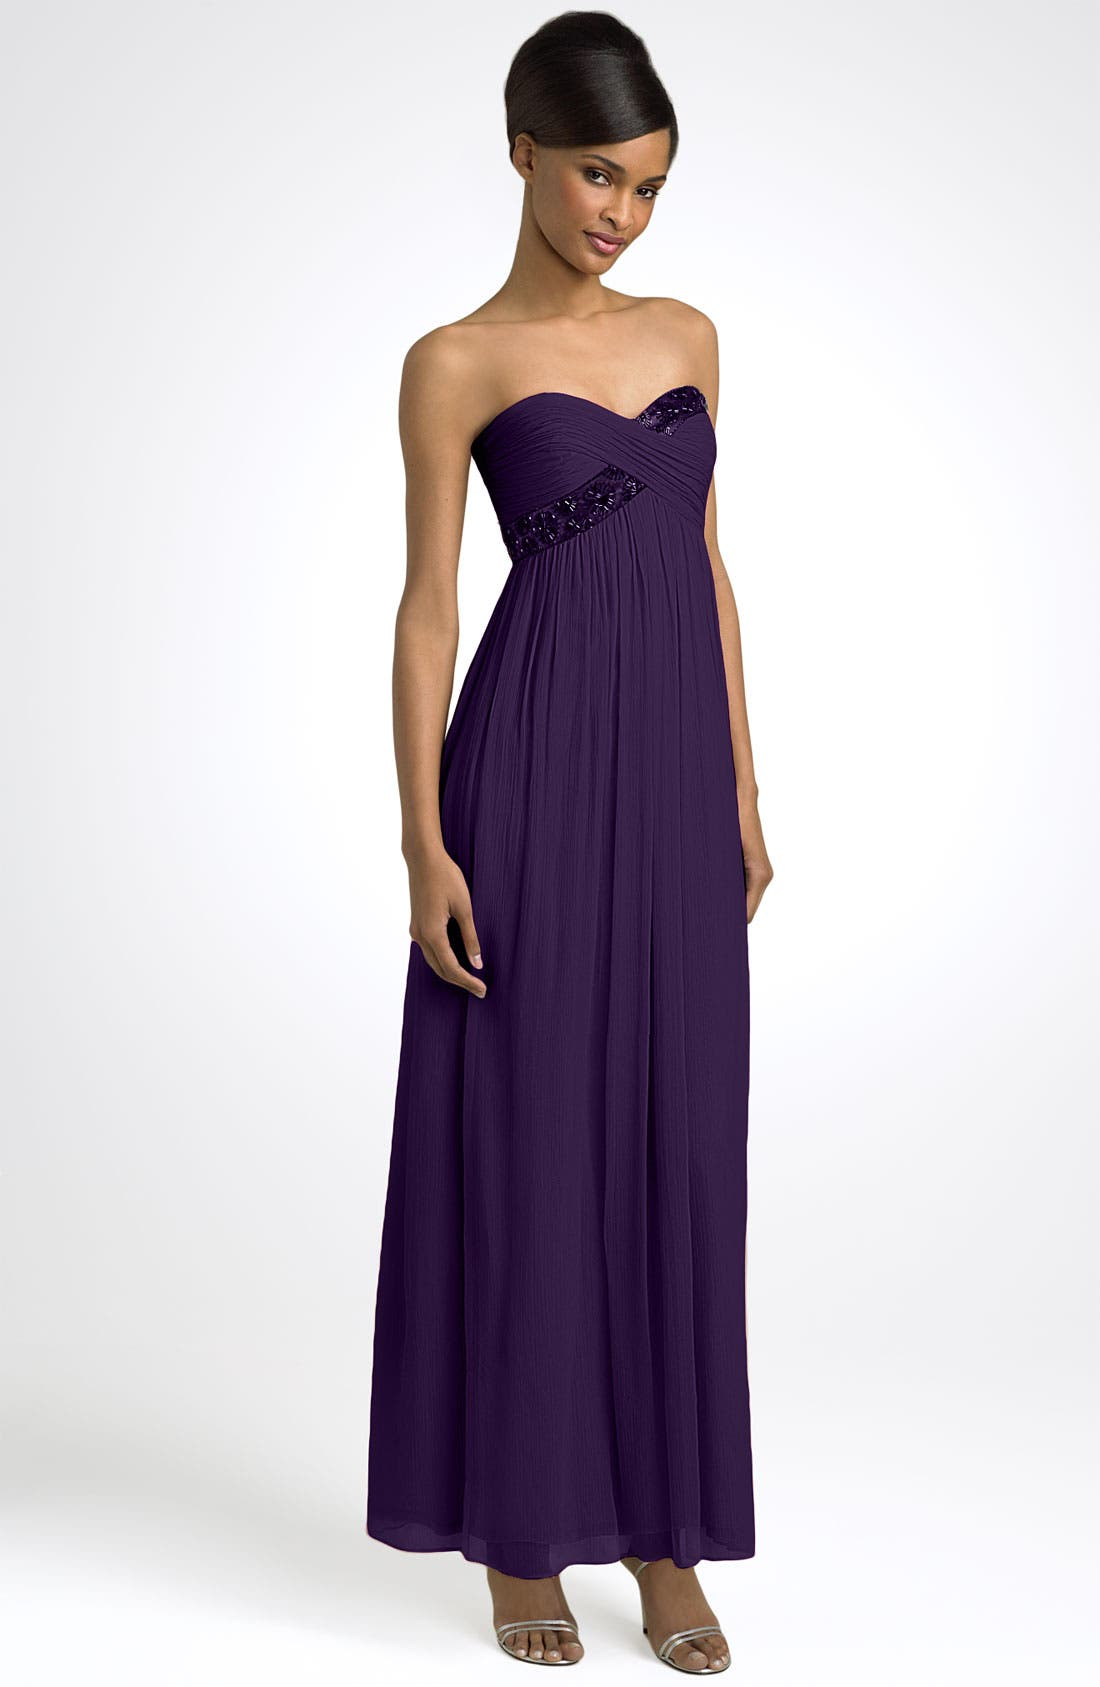 Alternate Image 1 Selected - Maggy London Strapless Beaded Chiffon Empire Gown